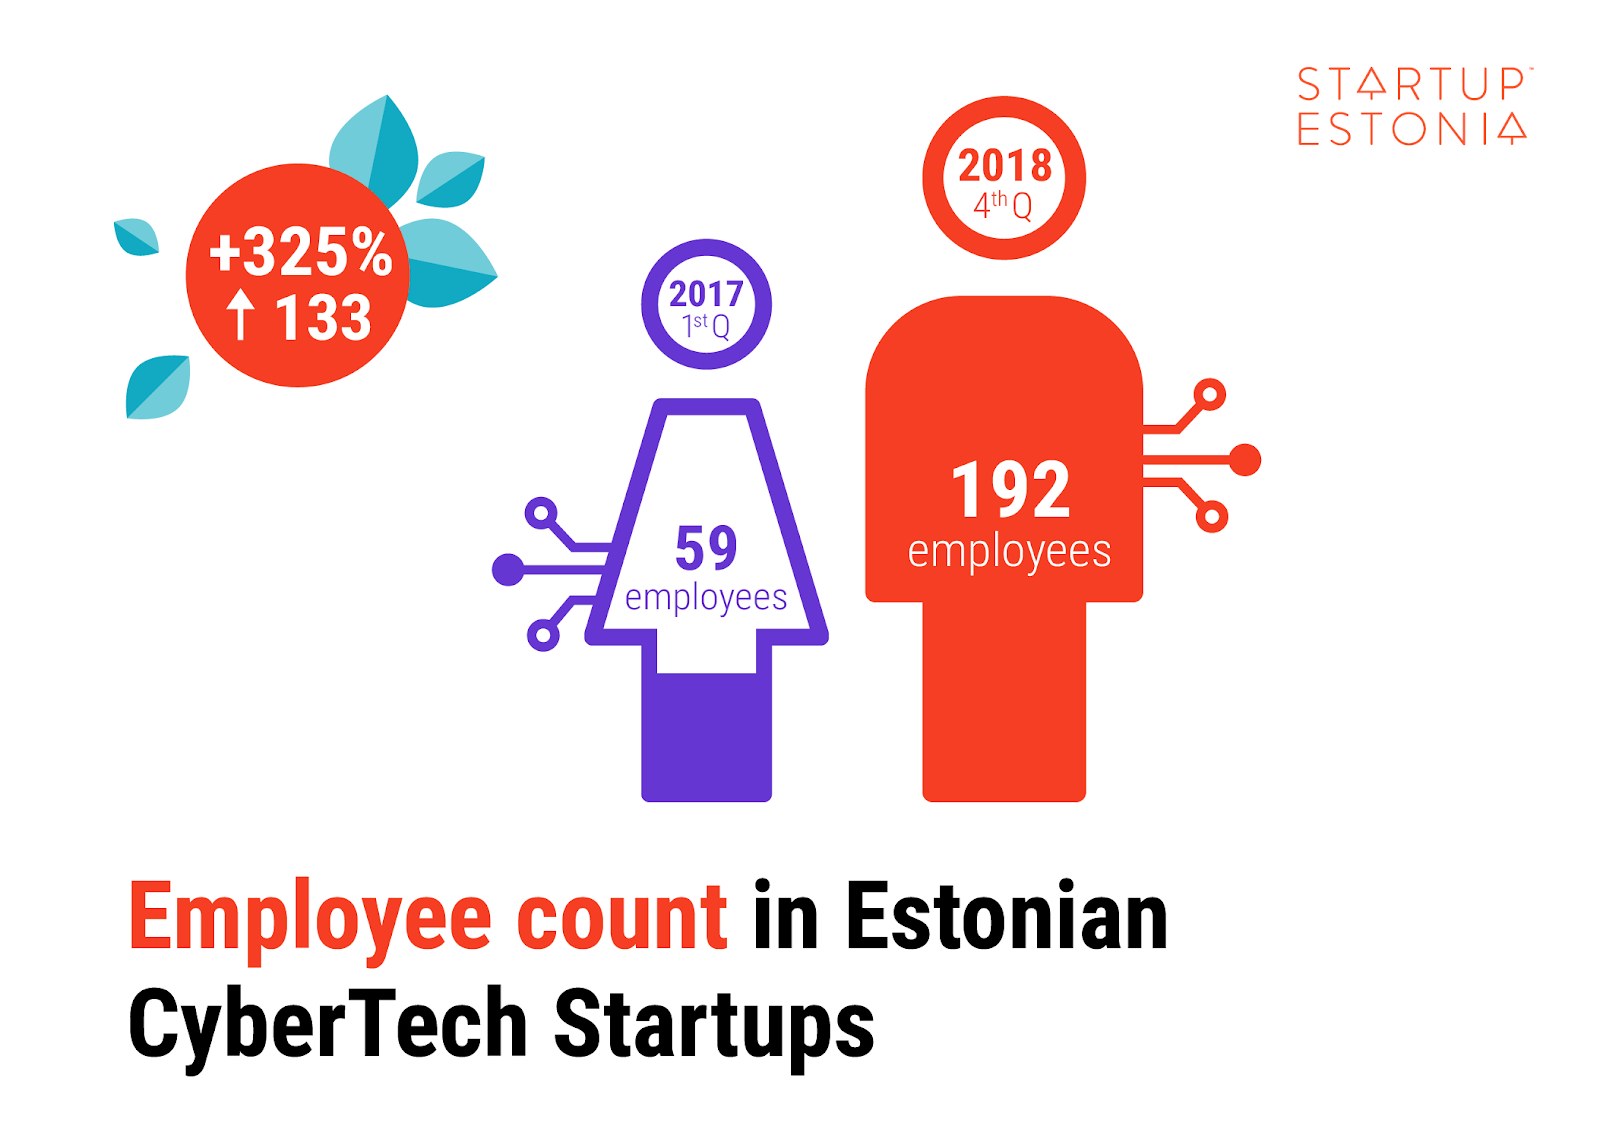 Employee count in Estonian CyberTech Startups